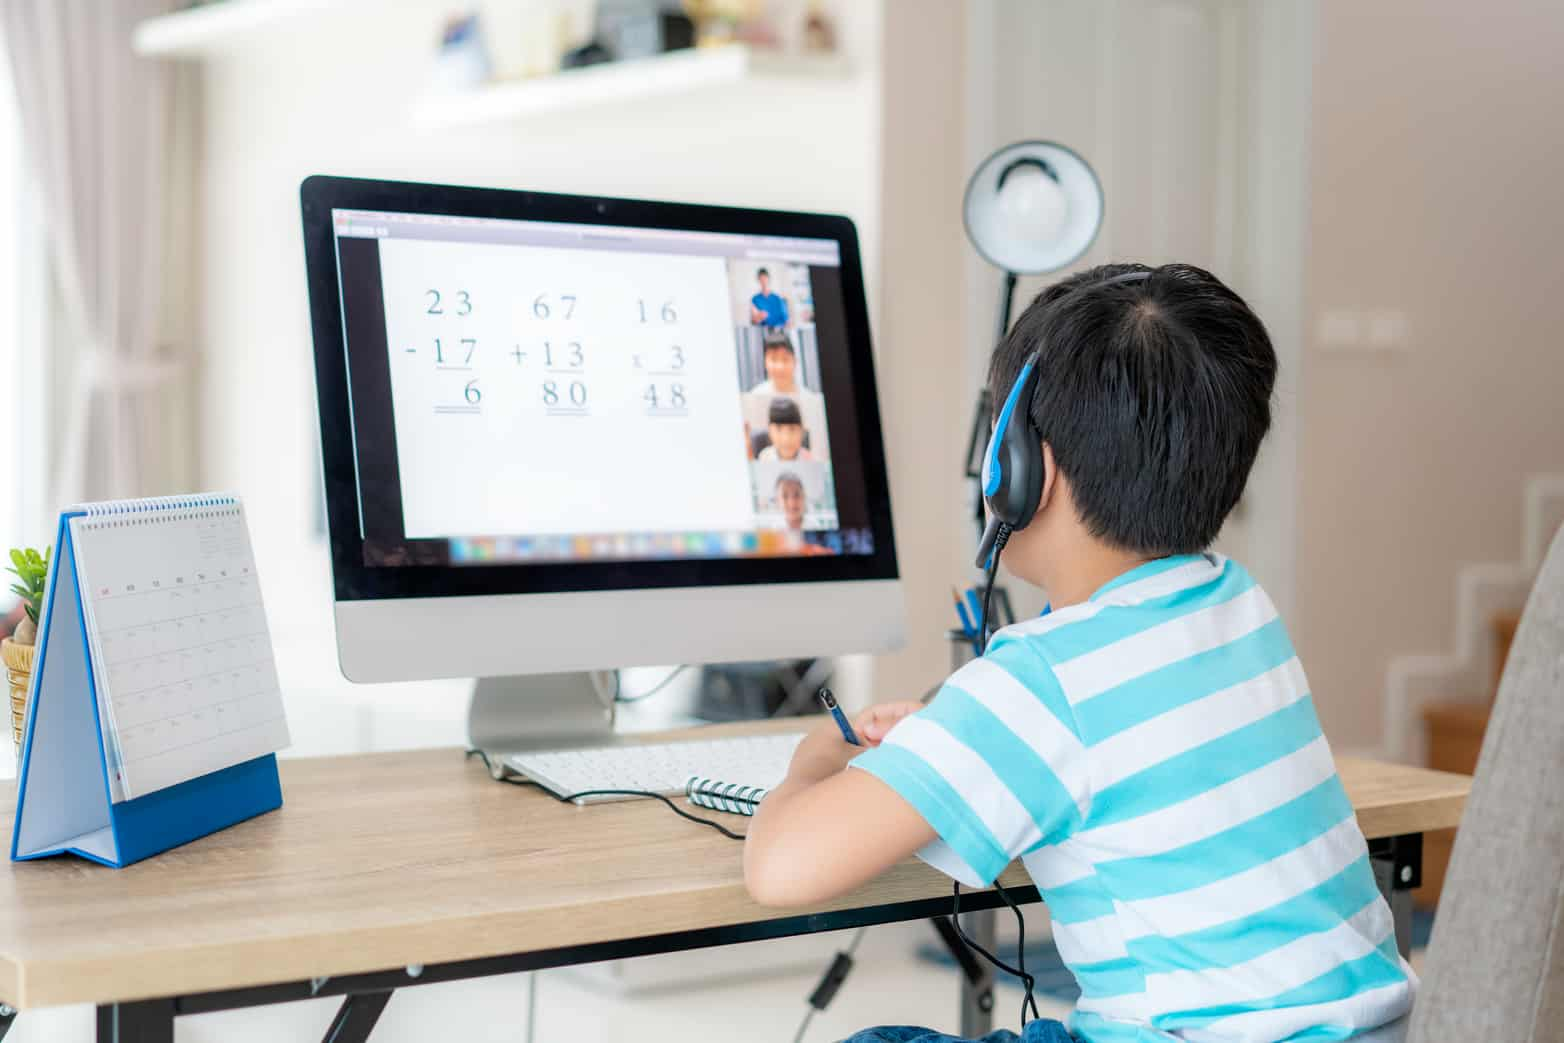 Student participating in a remote math classroom.